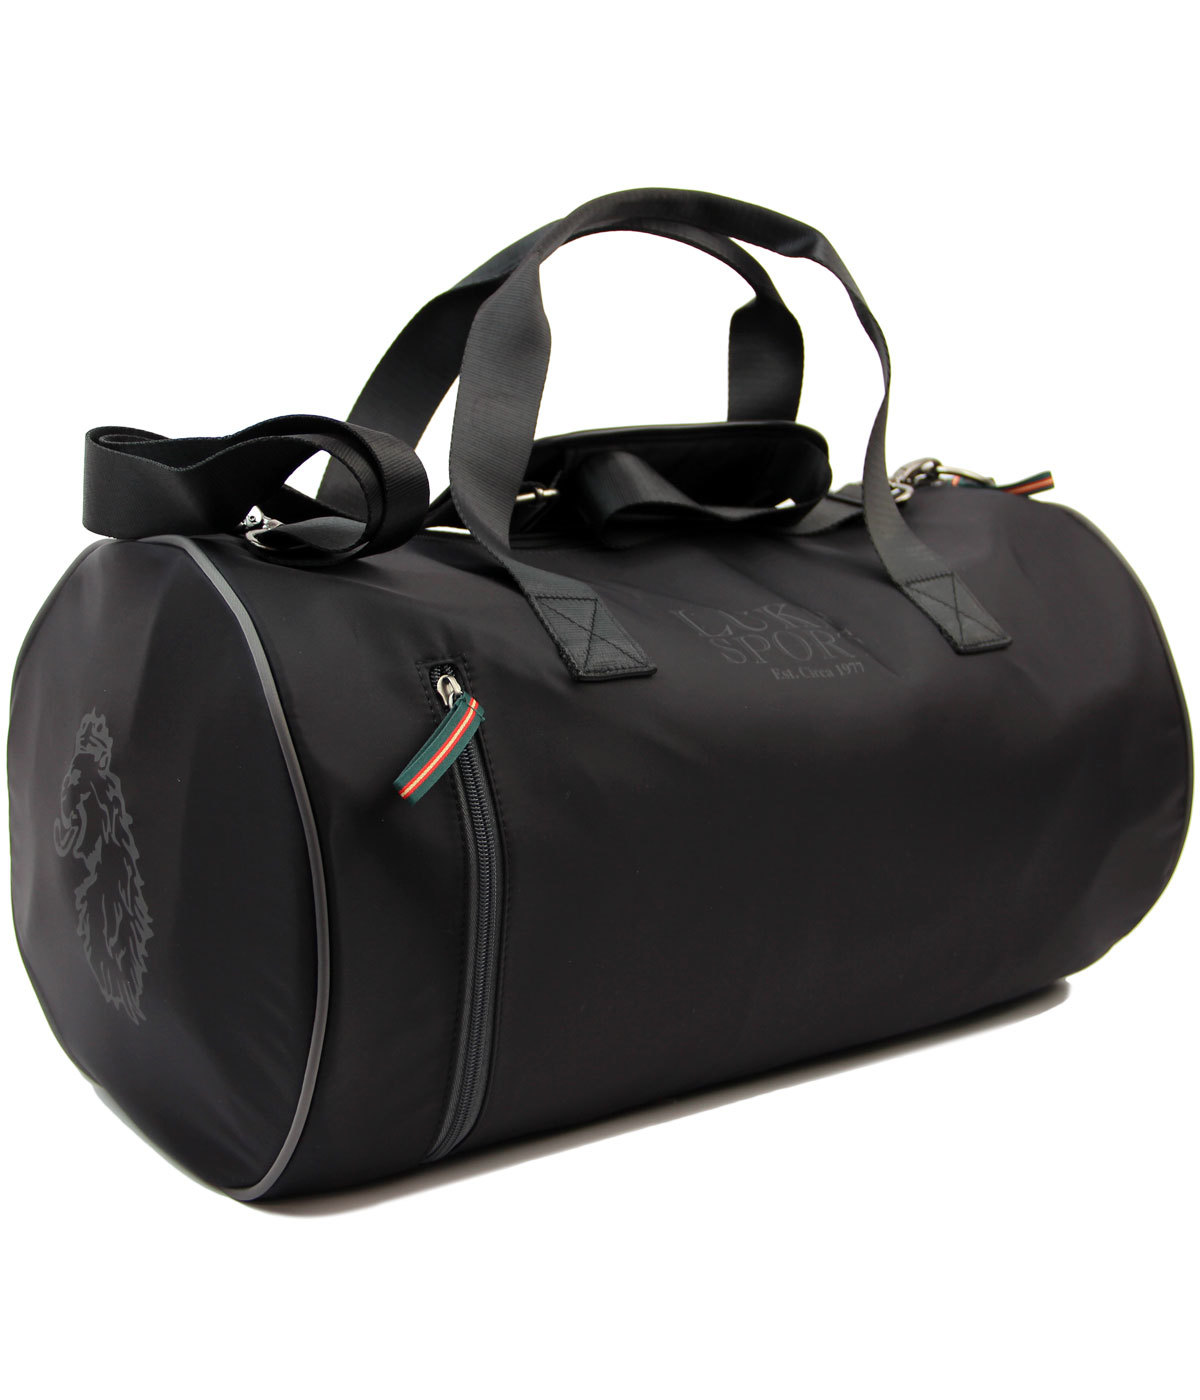 LUKE SPORT Skelton Retro 1970s Gym HOldall Barrel Bag in Black 7798b91f8e